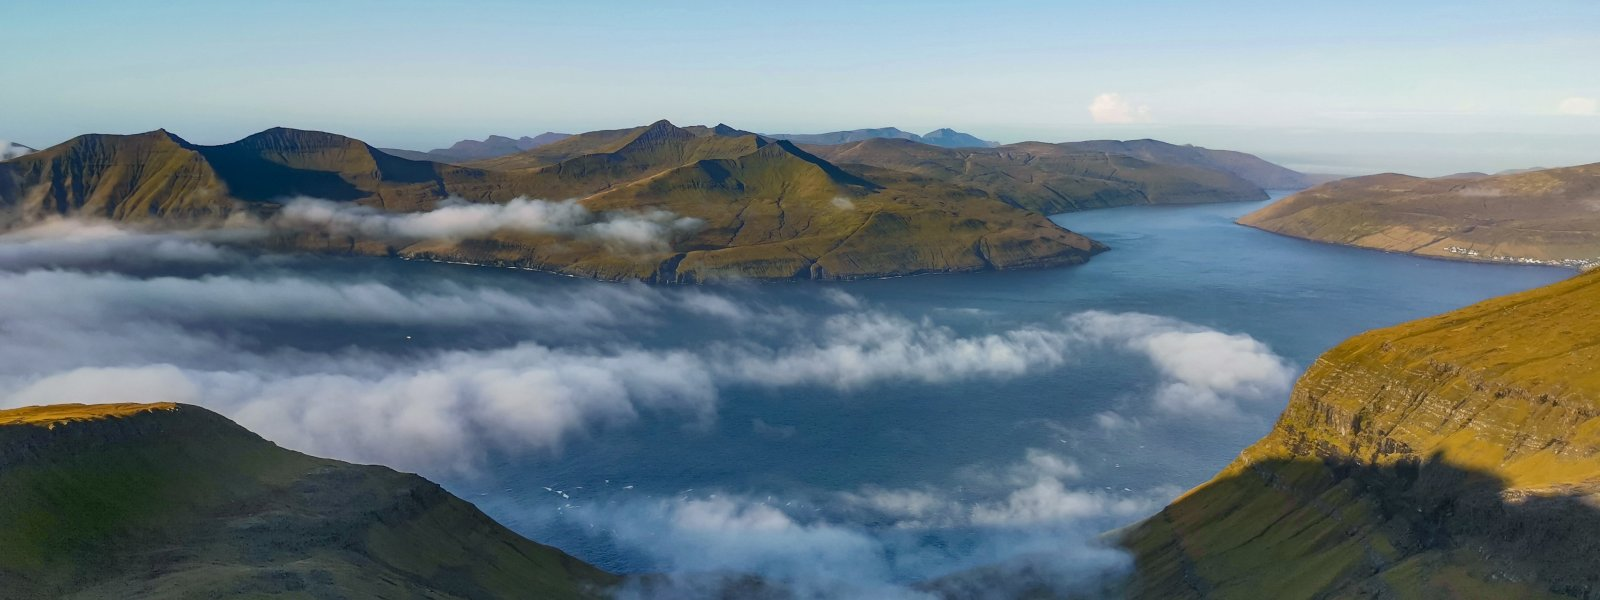 Picture of the Vestmannasund strait in the North West part of the Faroe Islands. Photo: Warren Cardwell